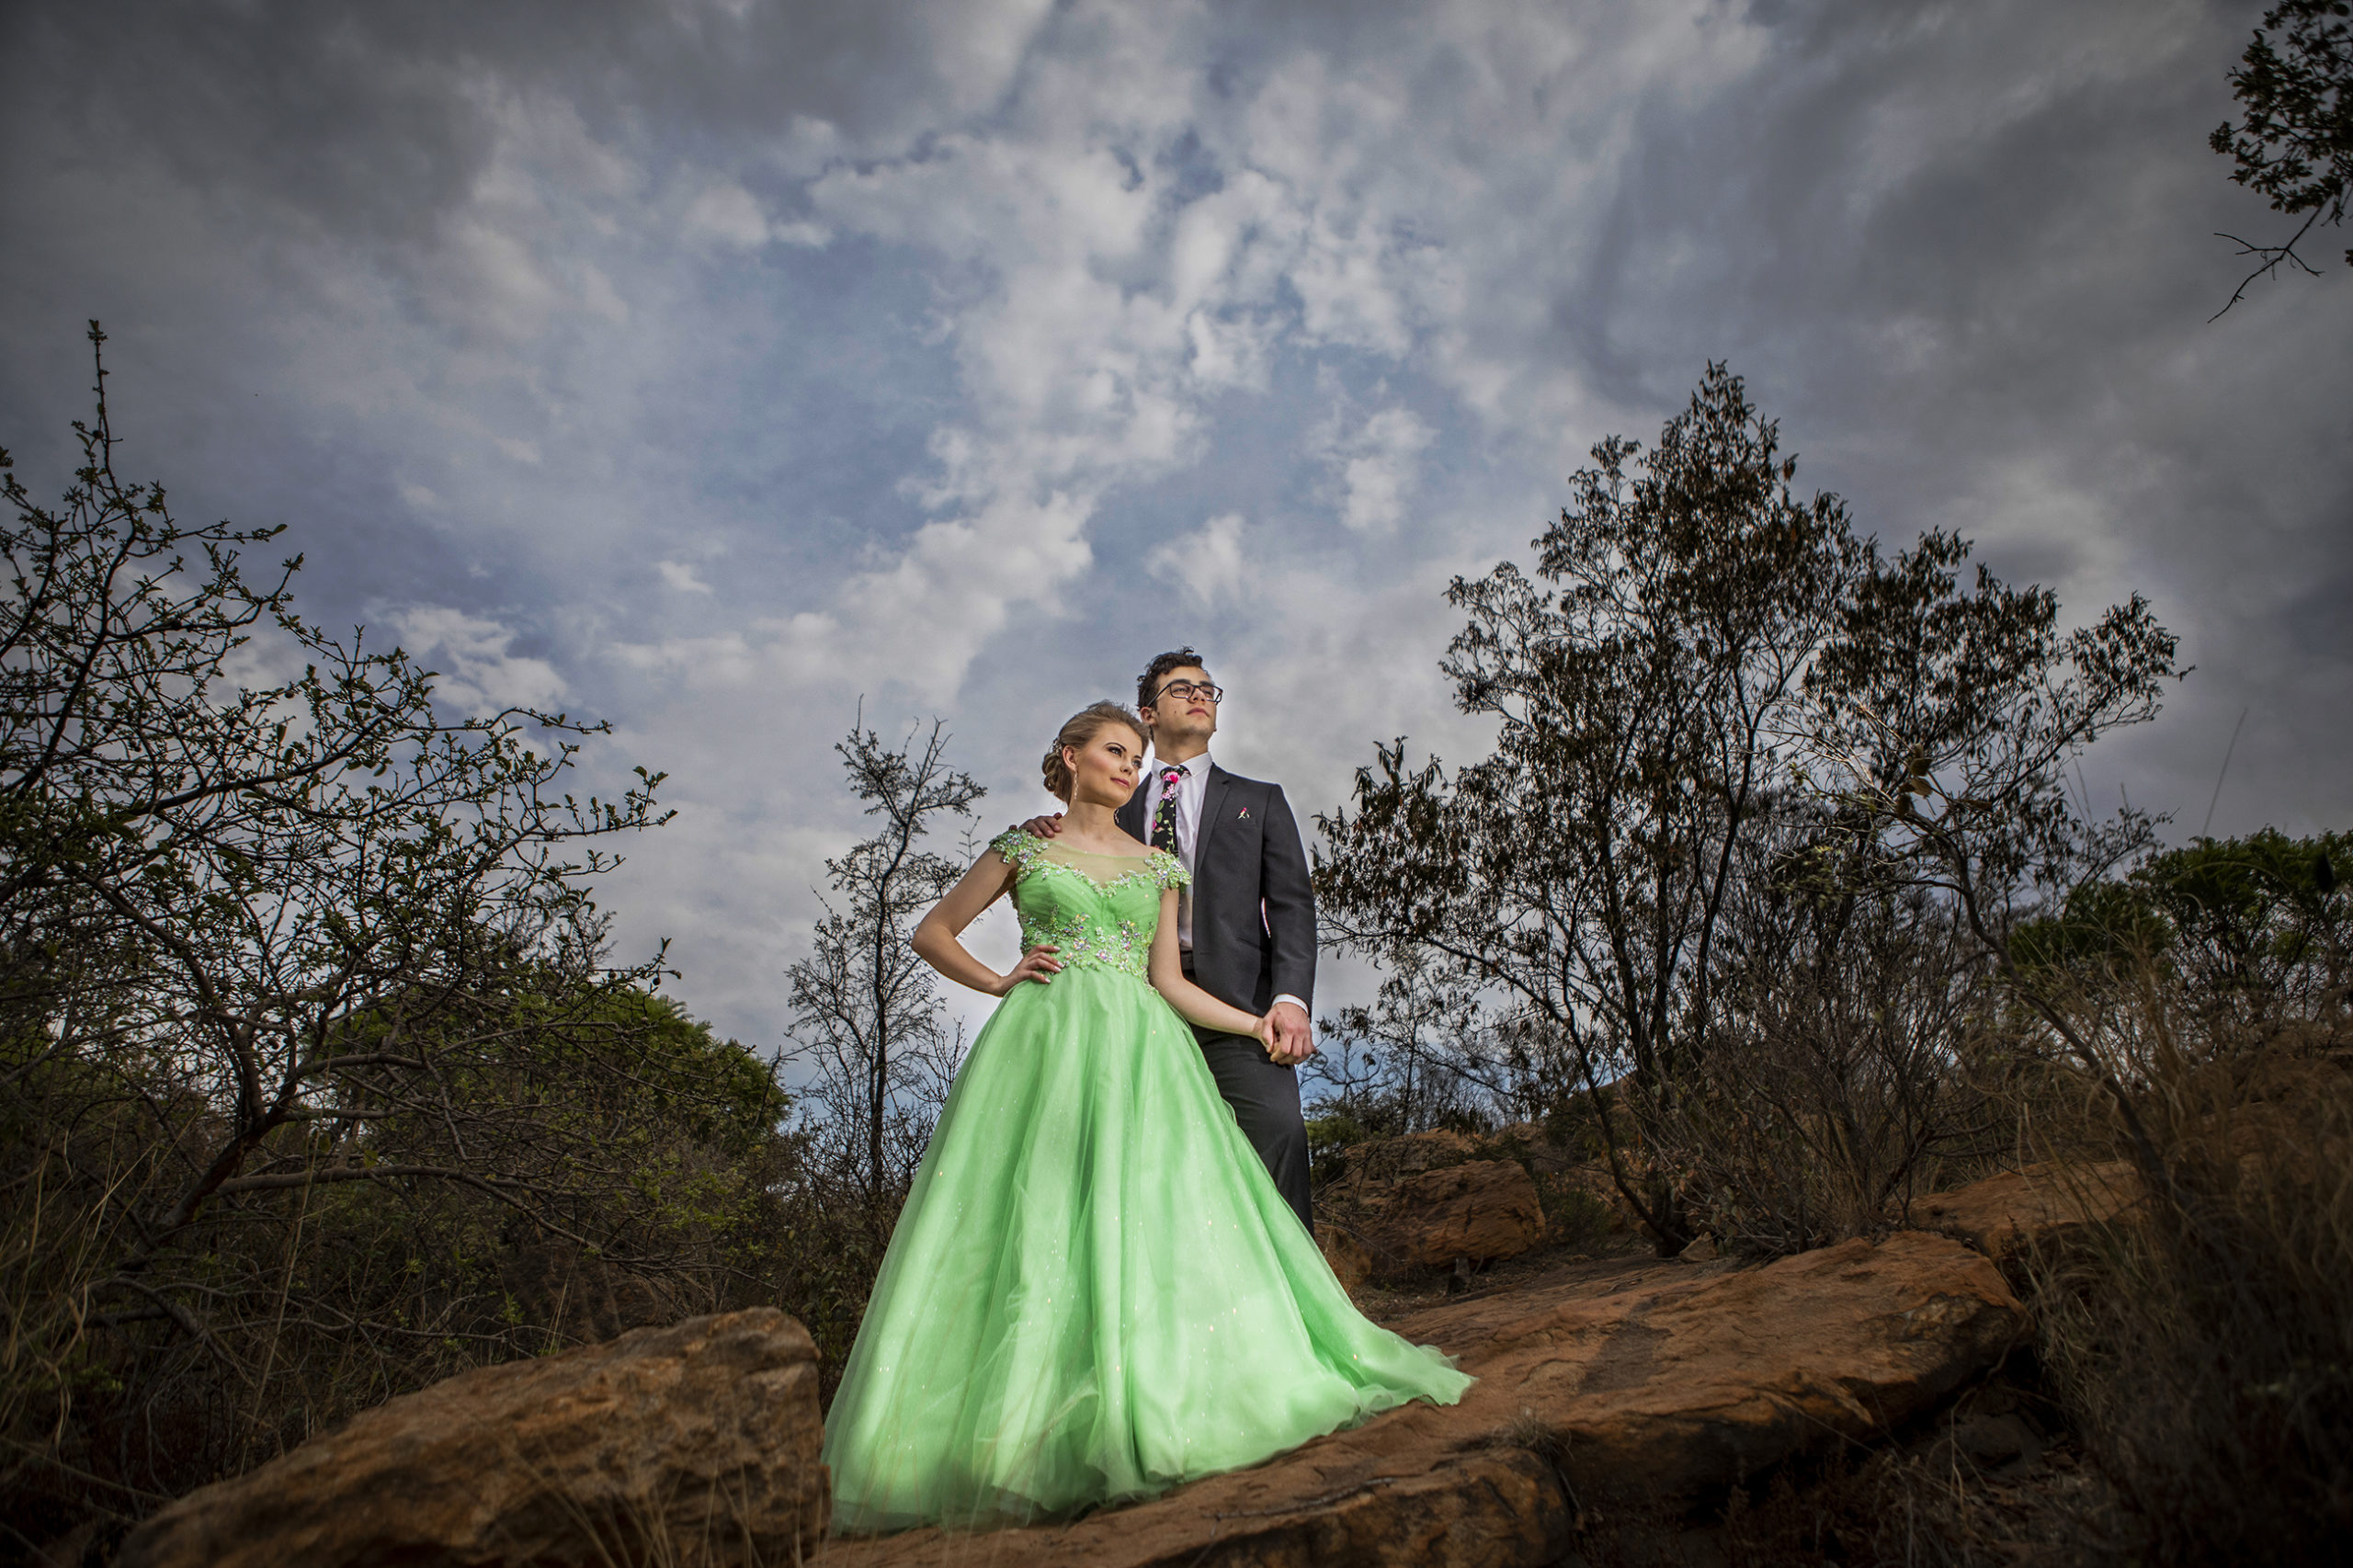 Matric Farewell Photographer Darrell Fraser